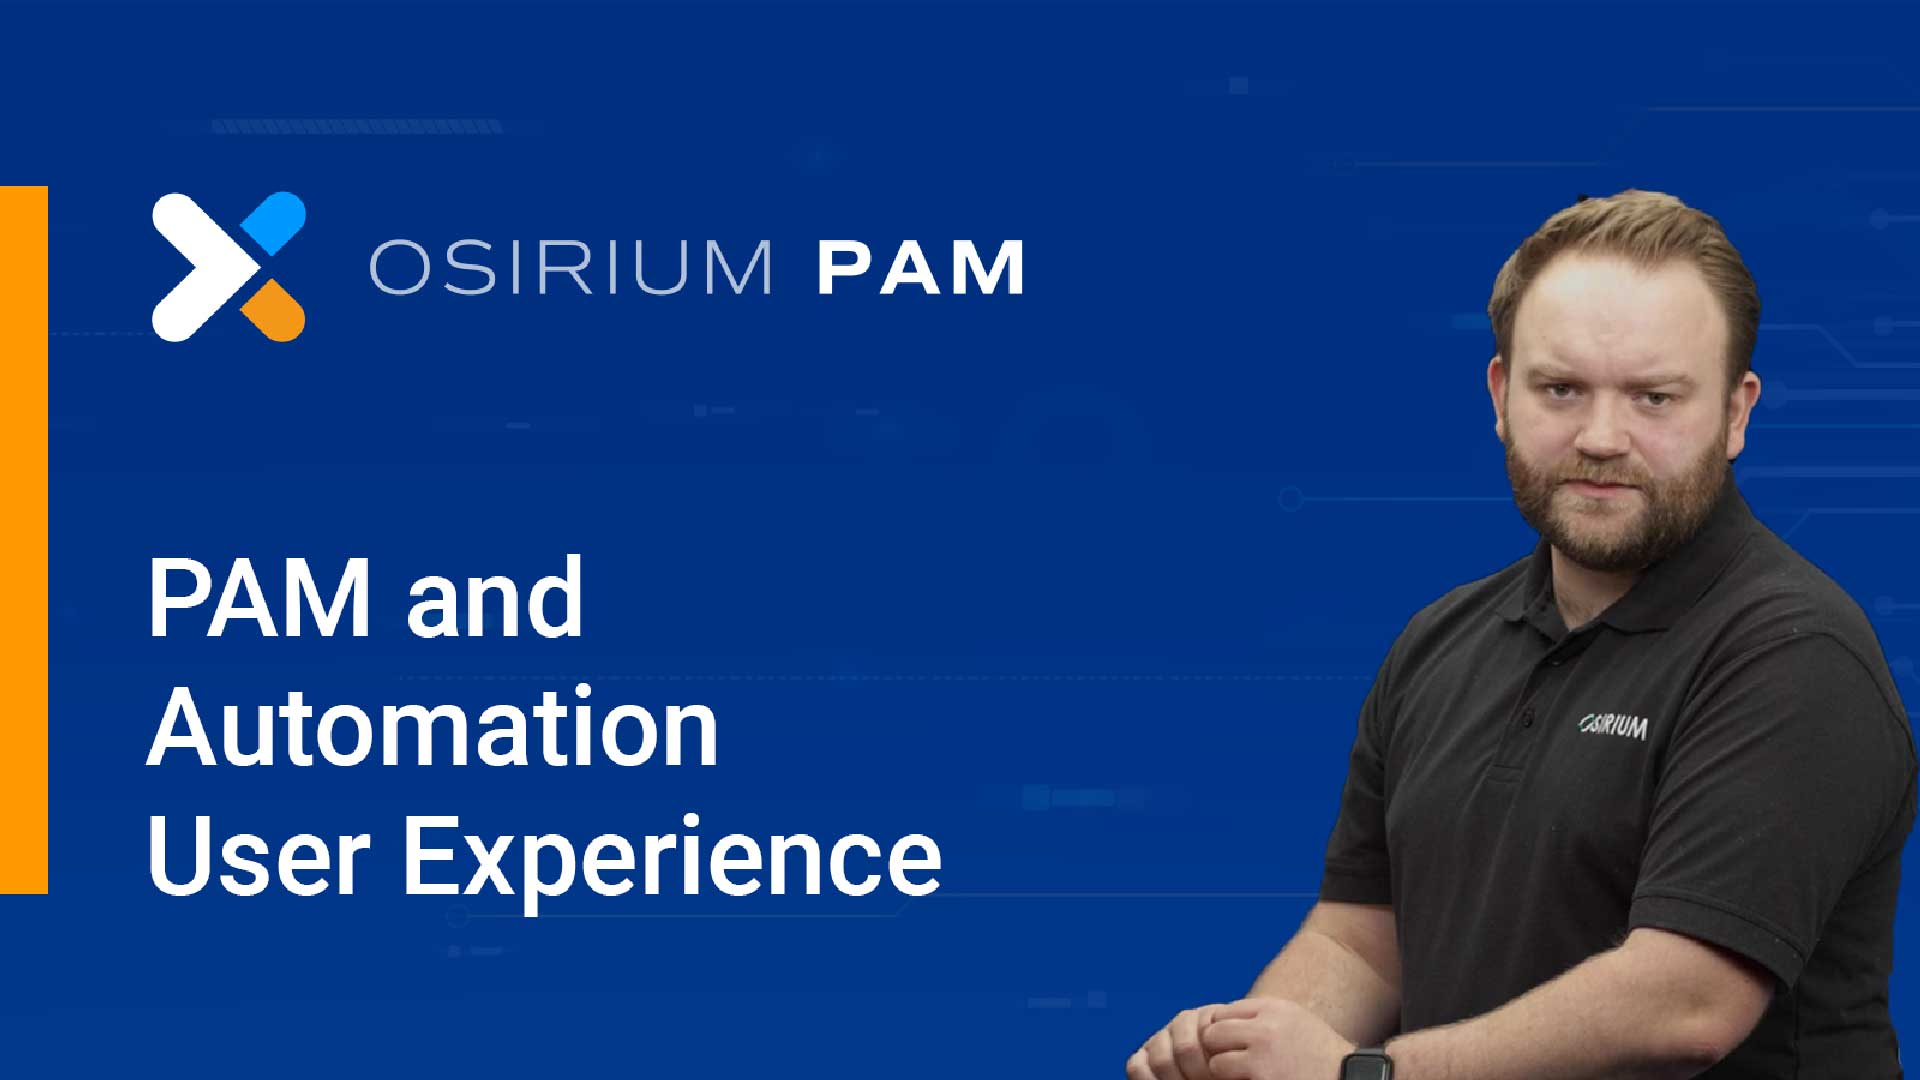 Osirium PAM and Automation User Experience